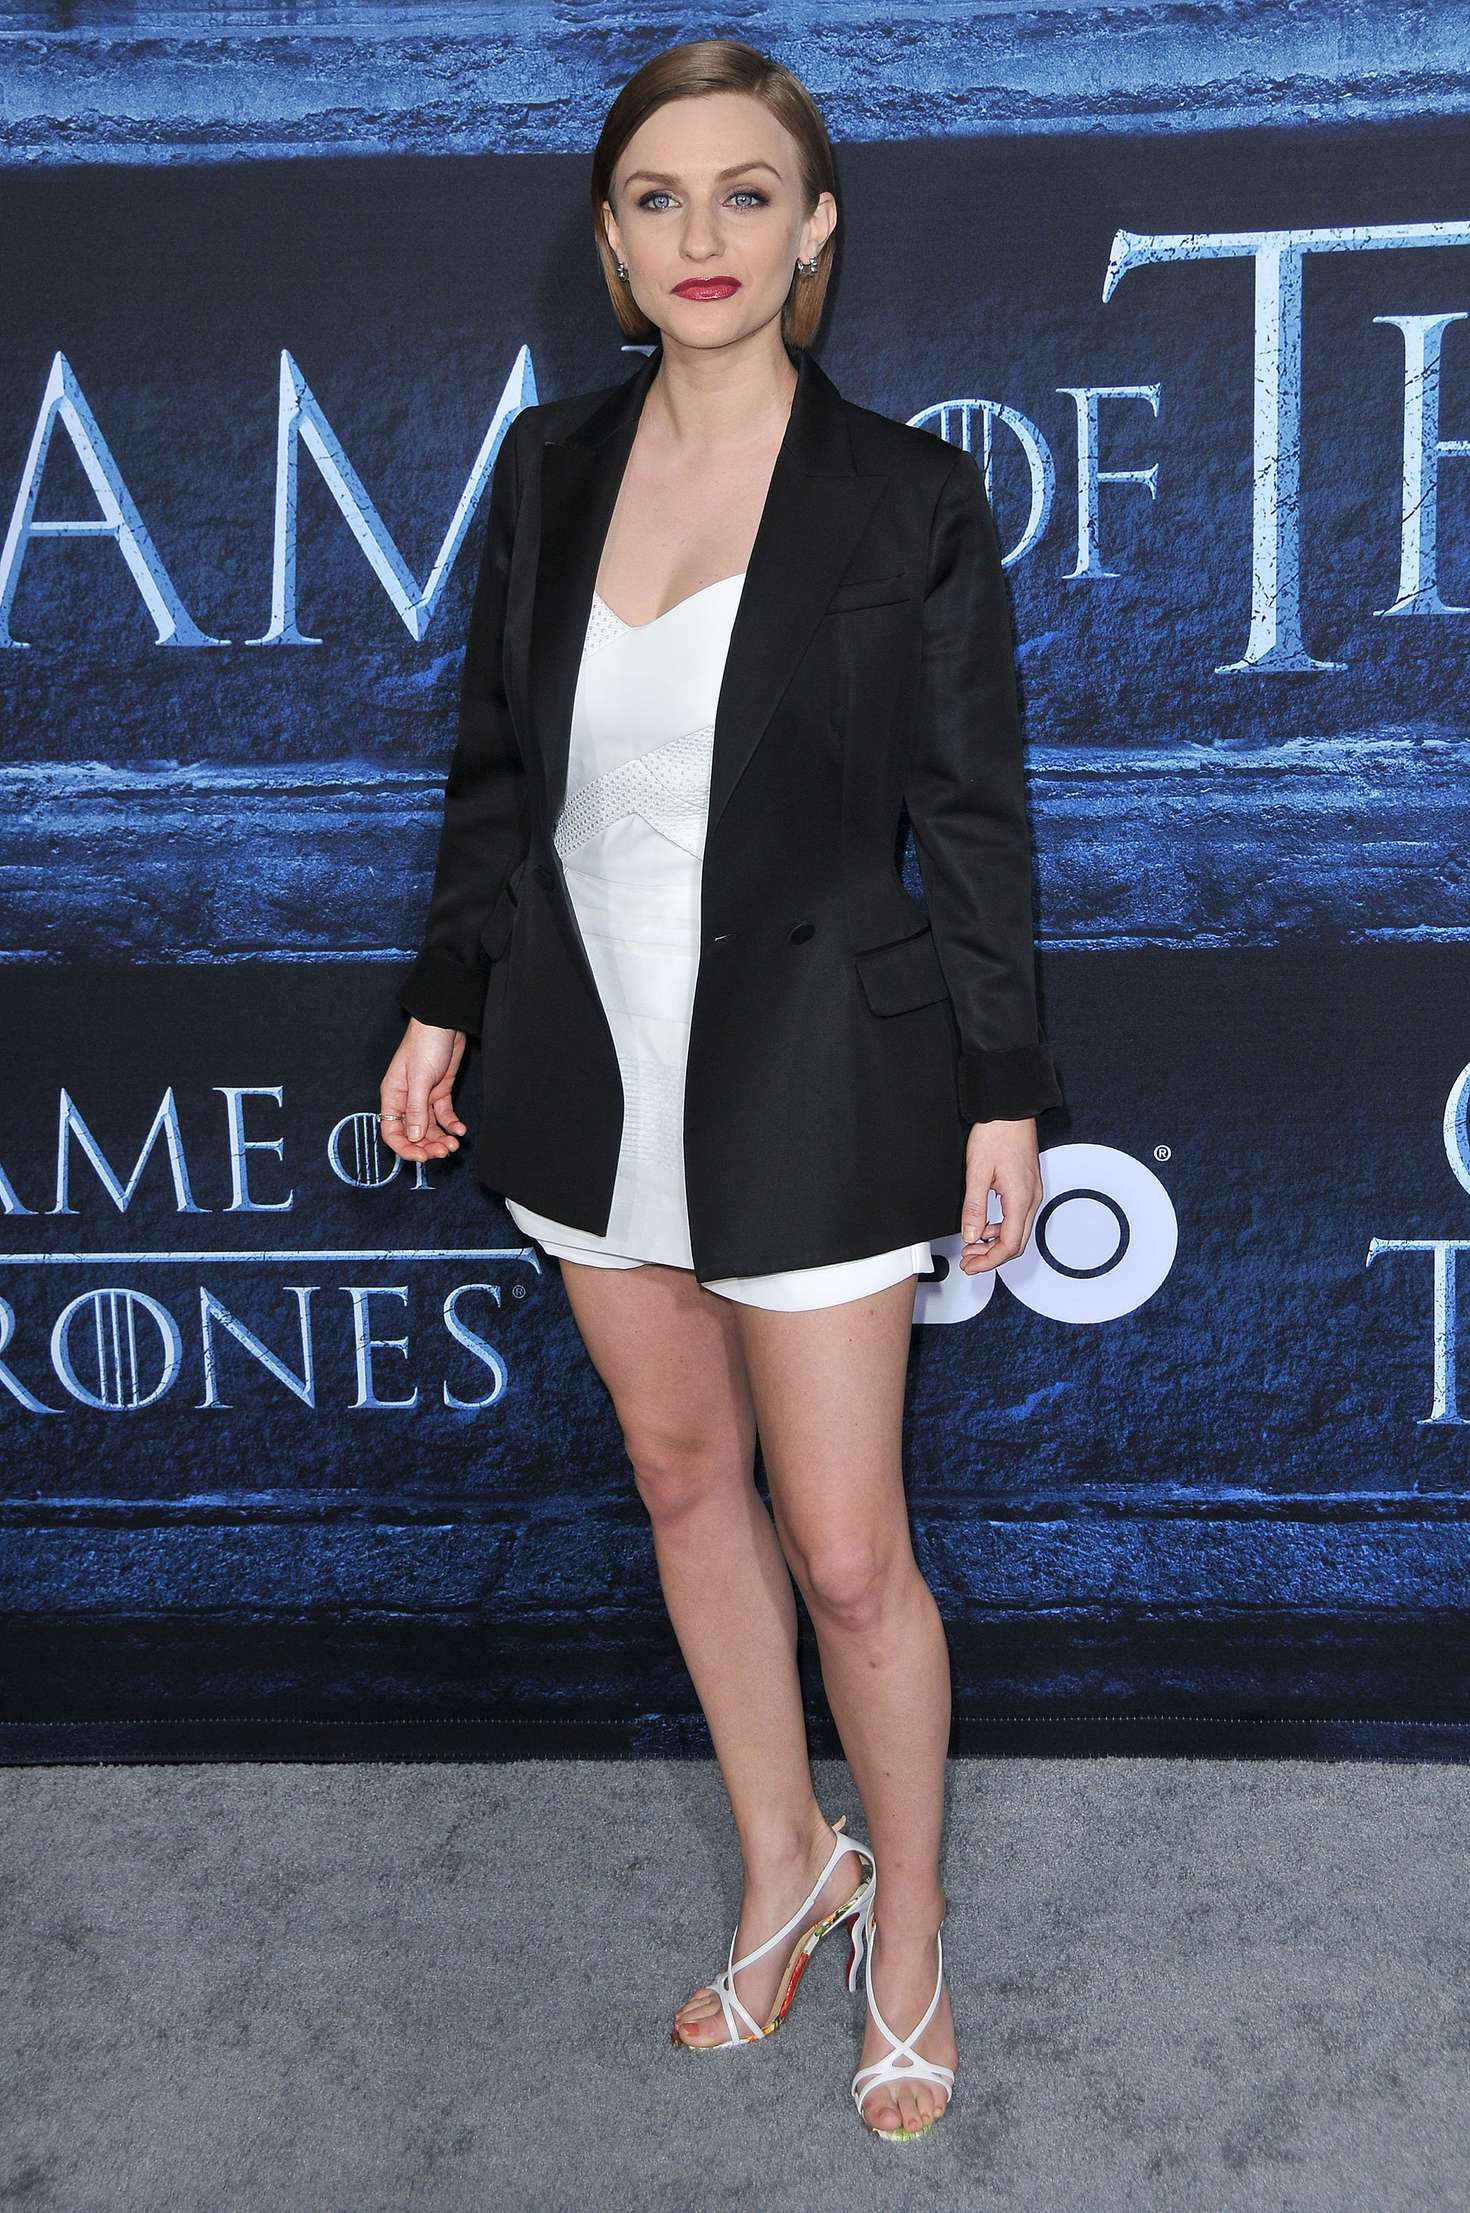 Celebrity Shiri Appleby nudes (61 photos), Sexy, Fappening, Twitter, swimsuit 2015